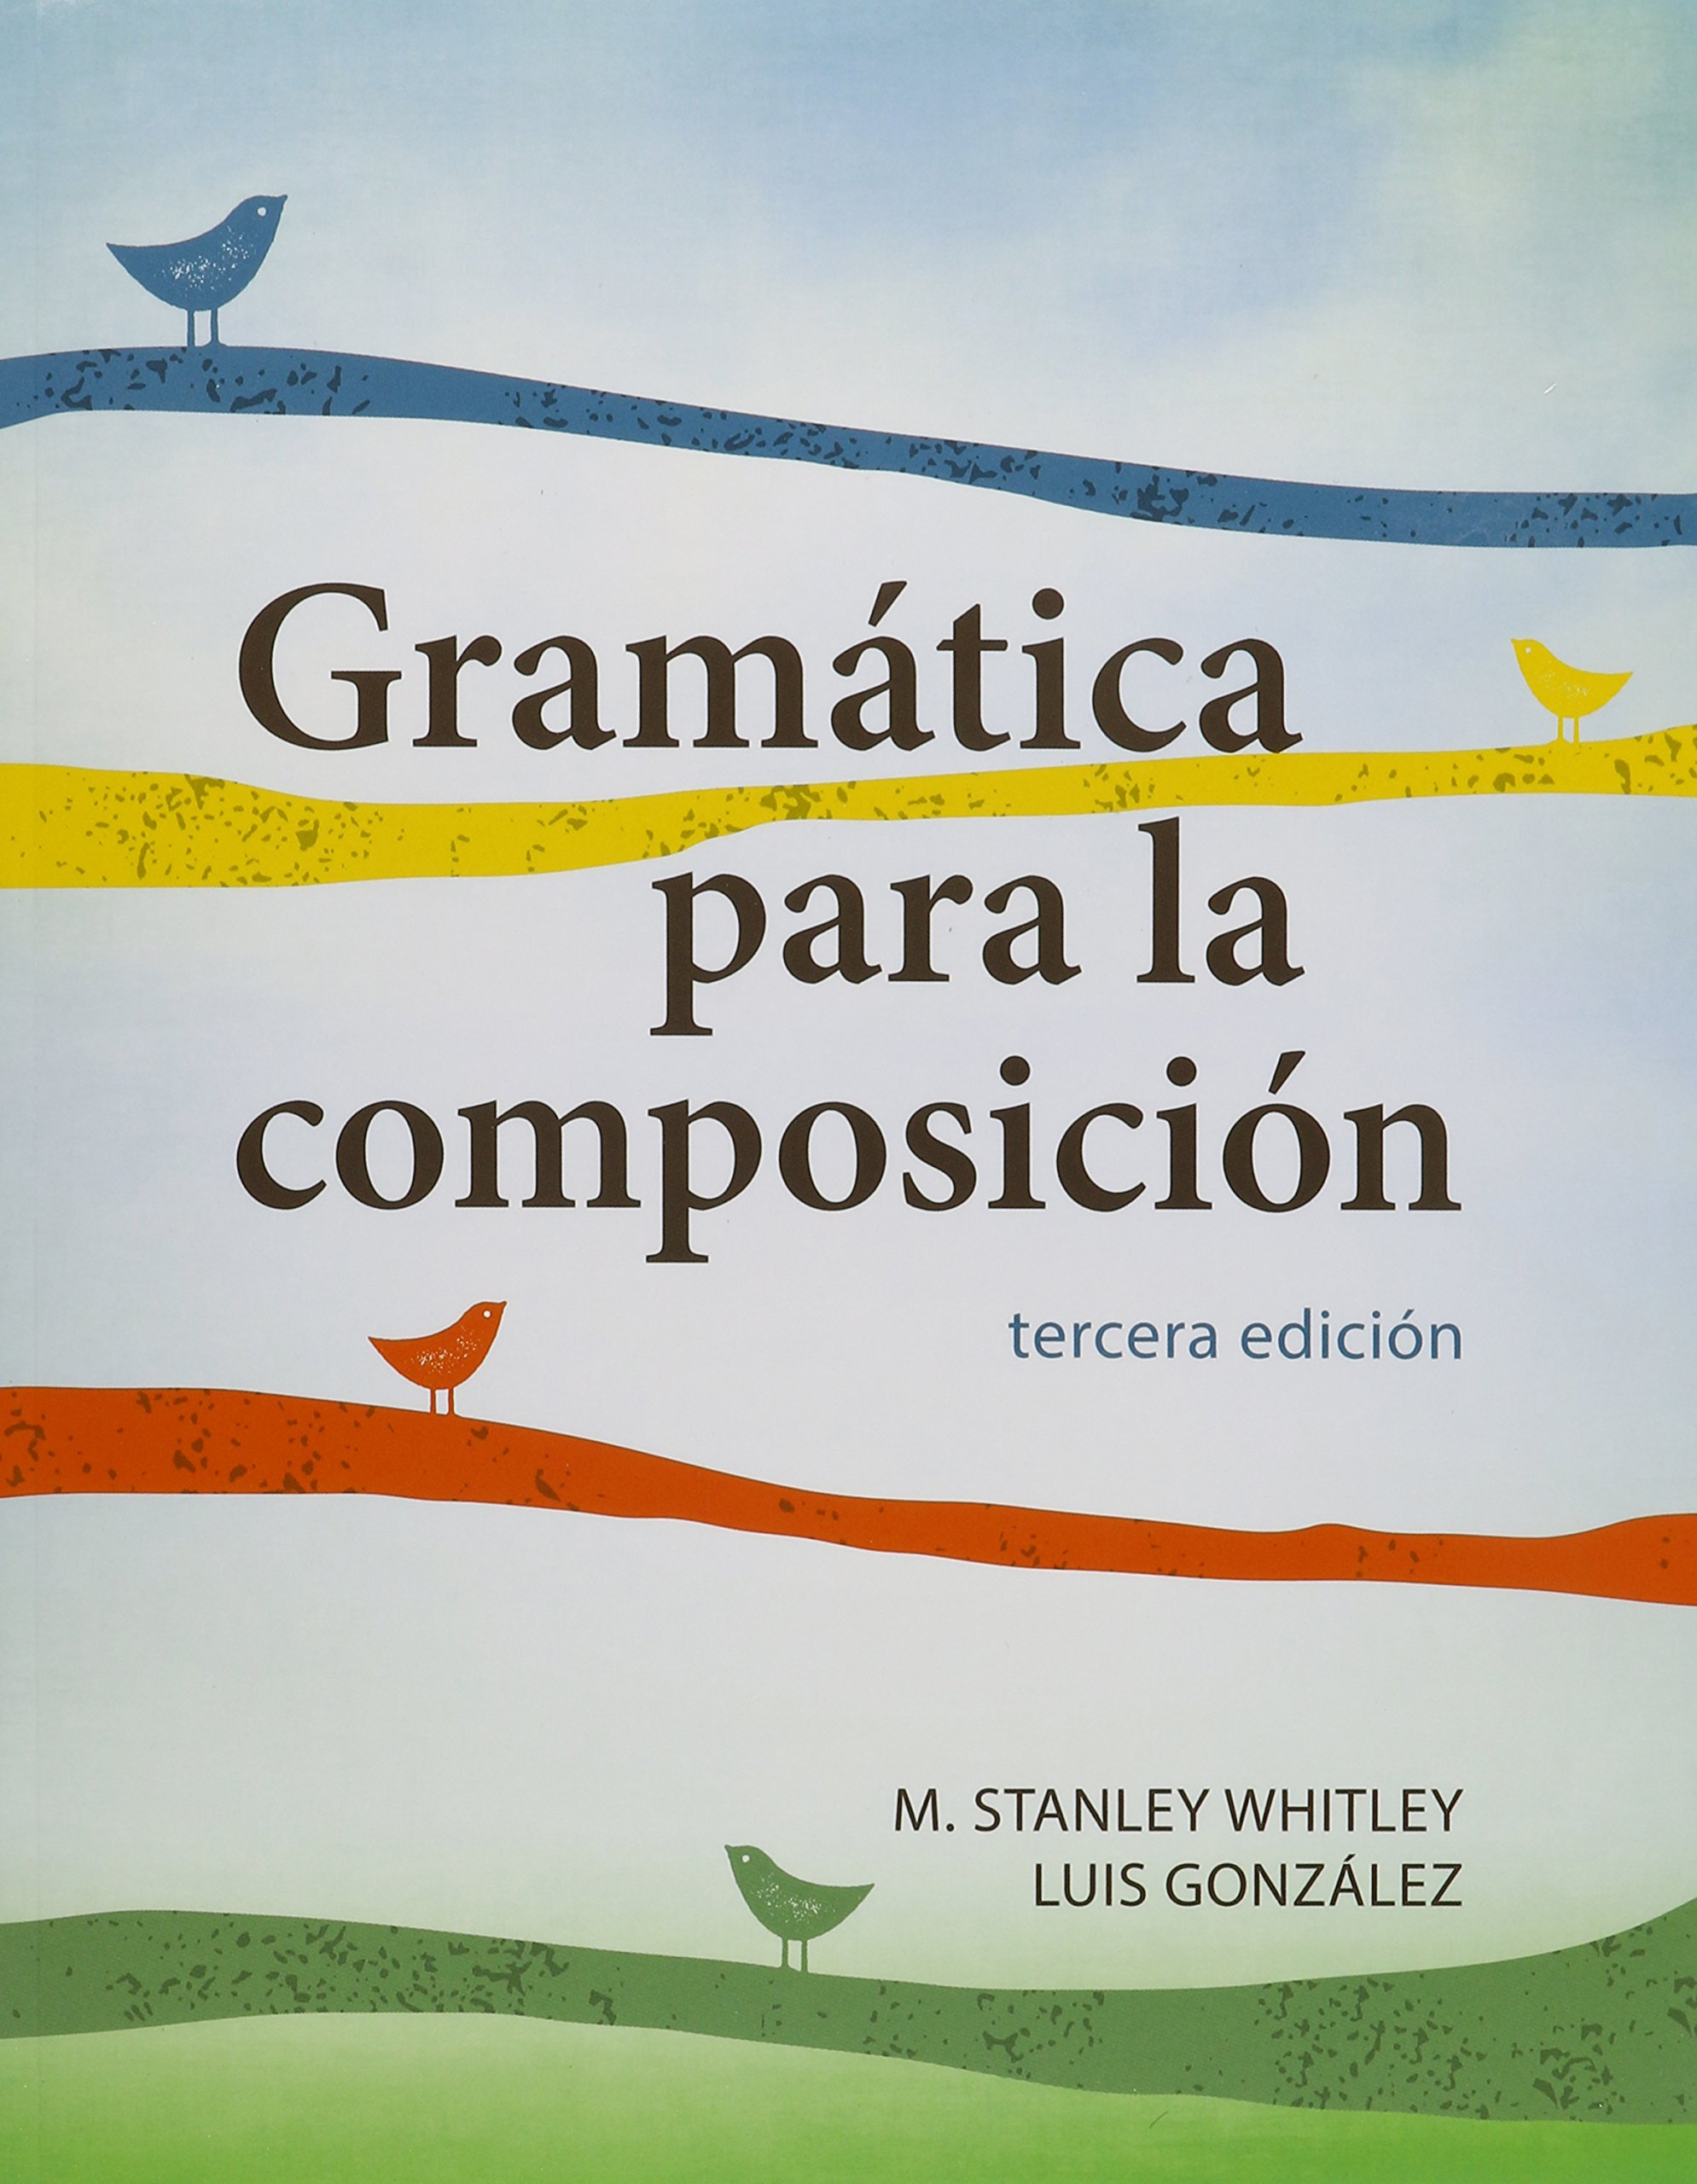 Gramática para la composición, Student's Bundle: Book + Website Access Card by Georgetown University Press